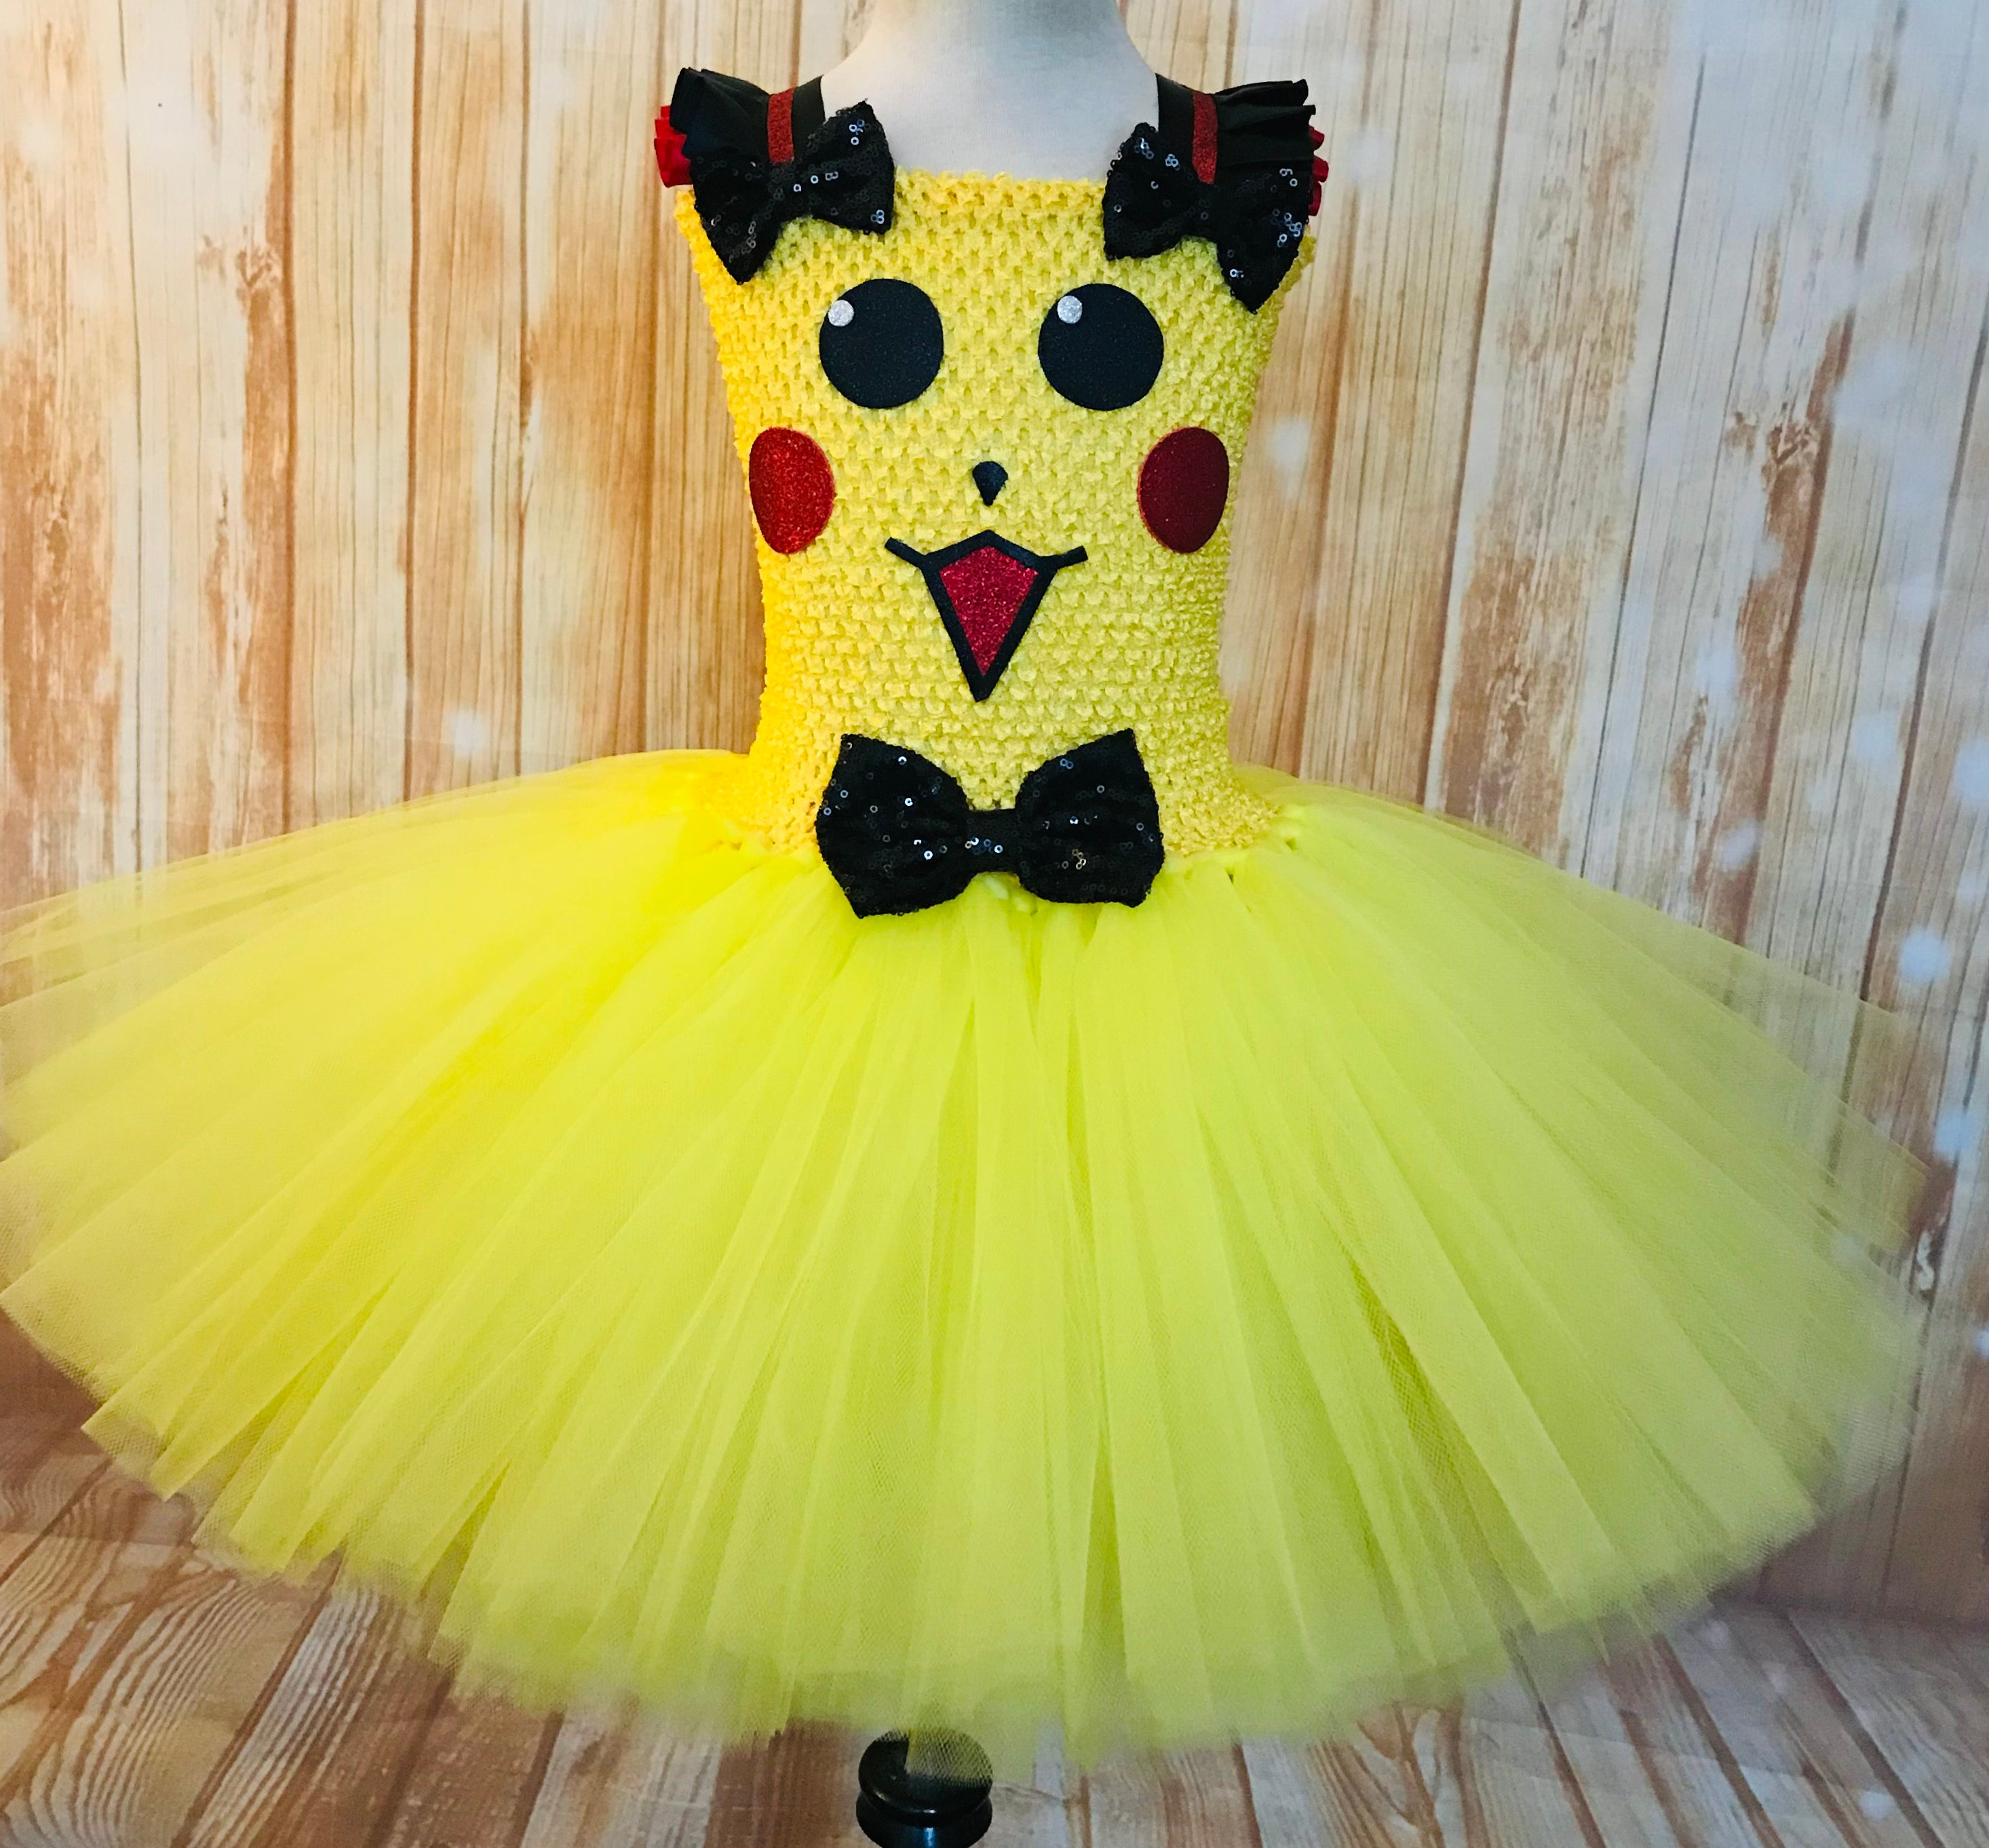 Pikachu Tutu, Pokemon Dress, Pikachu Party